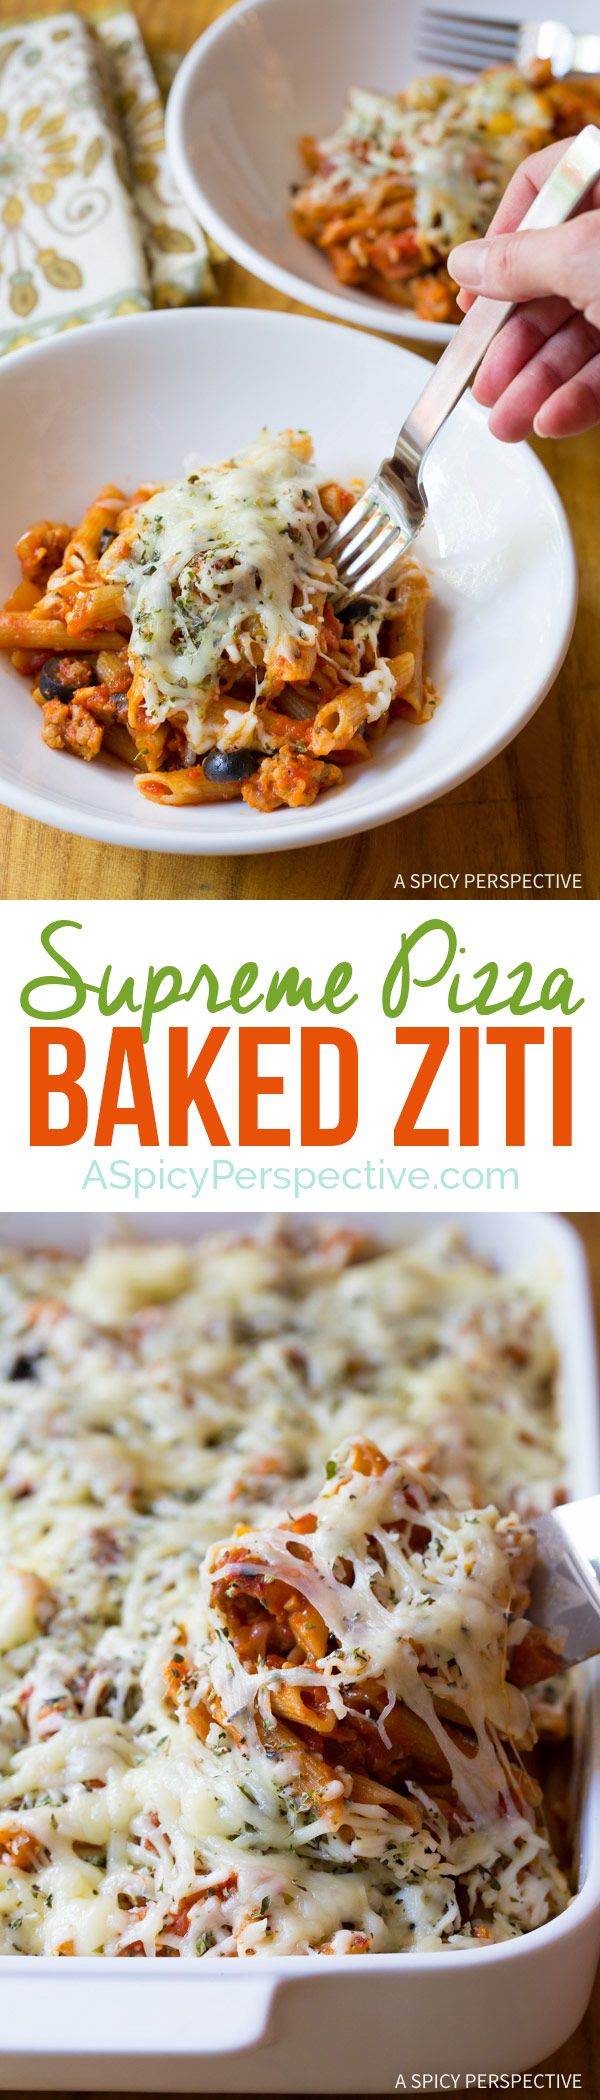 A Hearty Cozy Family Favorite - Supreme Pizza Baked Ziti Recipe on ASpicyPerspective.com #pasta via @spicyperspectiv